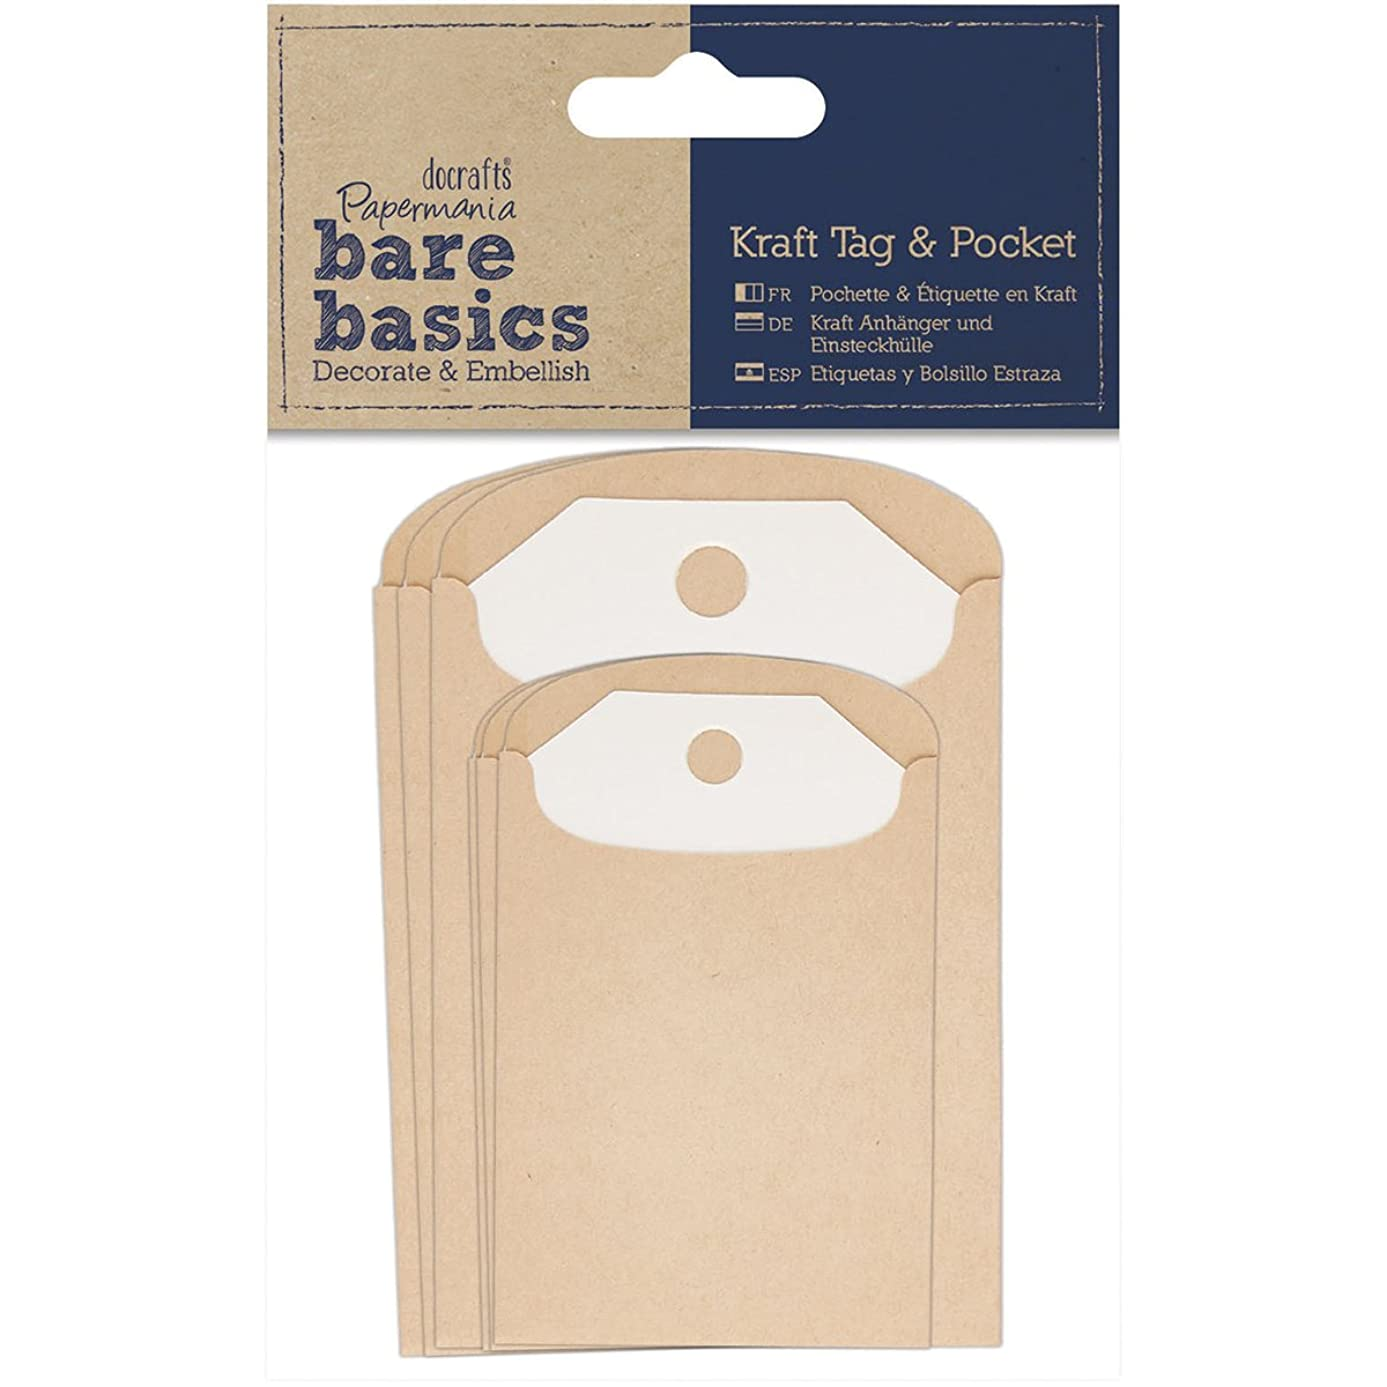 DOCrafts Papermania Bare Basics Cardstock Tags and Pockets Natural Kraft Rectangle